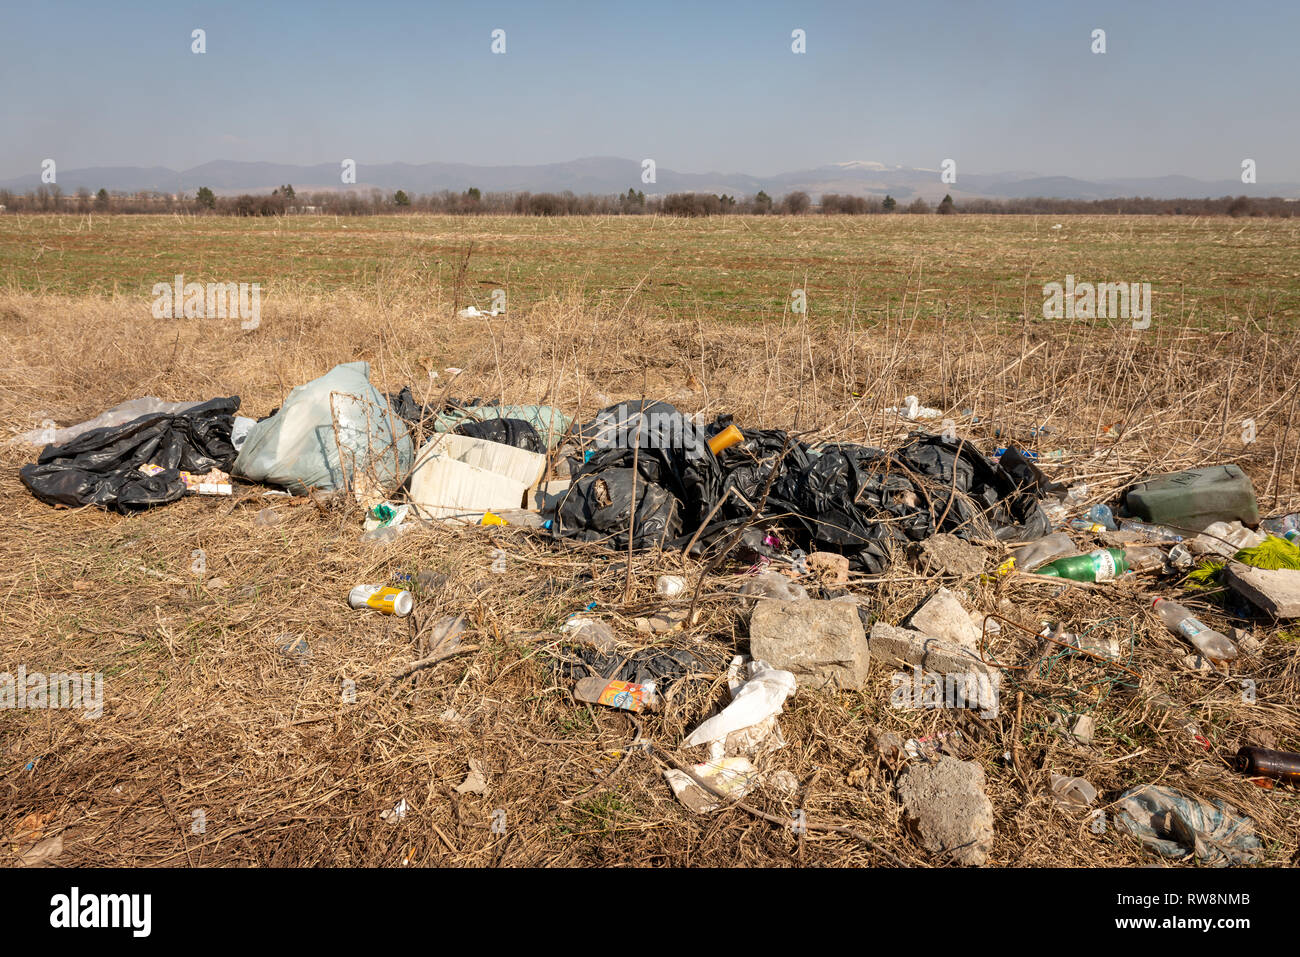 Dumped garbage waste litter on a field in bright sunny day. Typical view in the Bulgarian countryside. Environmental problem. - Stock Image